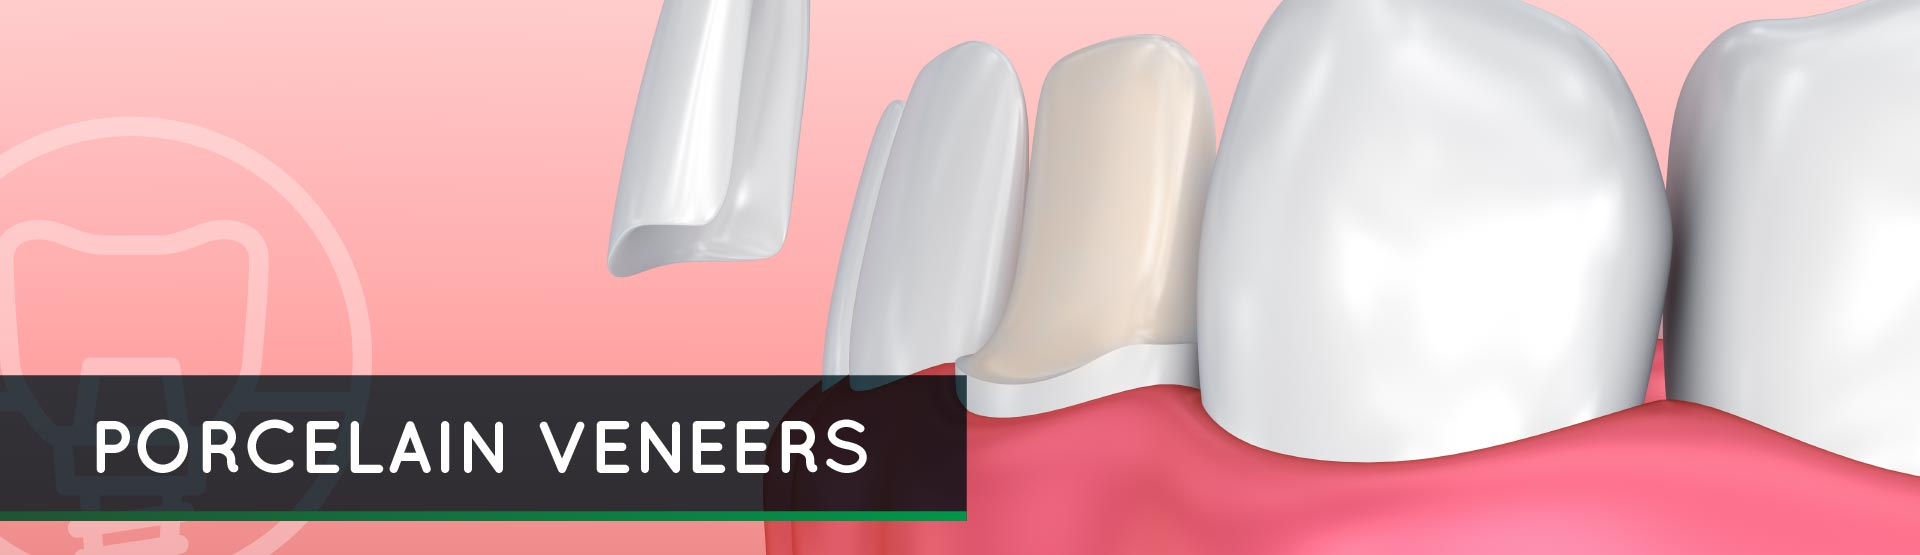 Porcelain Veneers – Cosmetic Dental Care and Implant Center